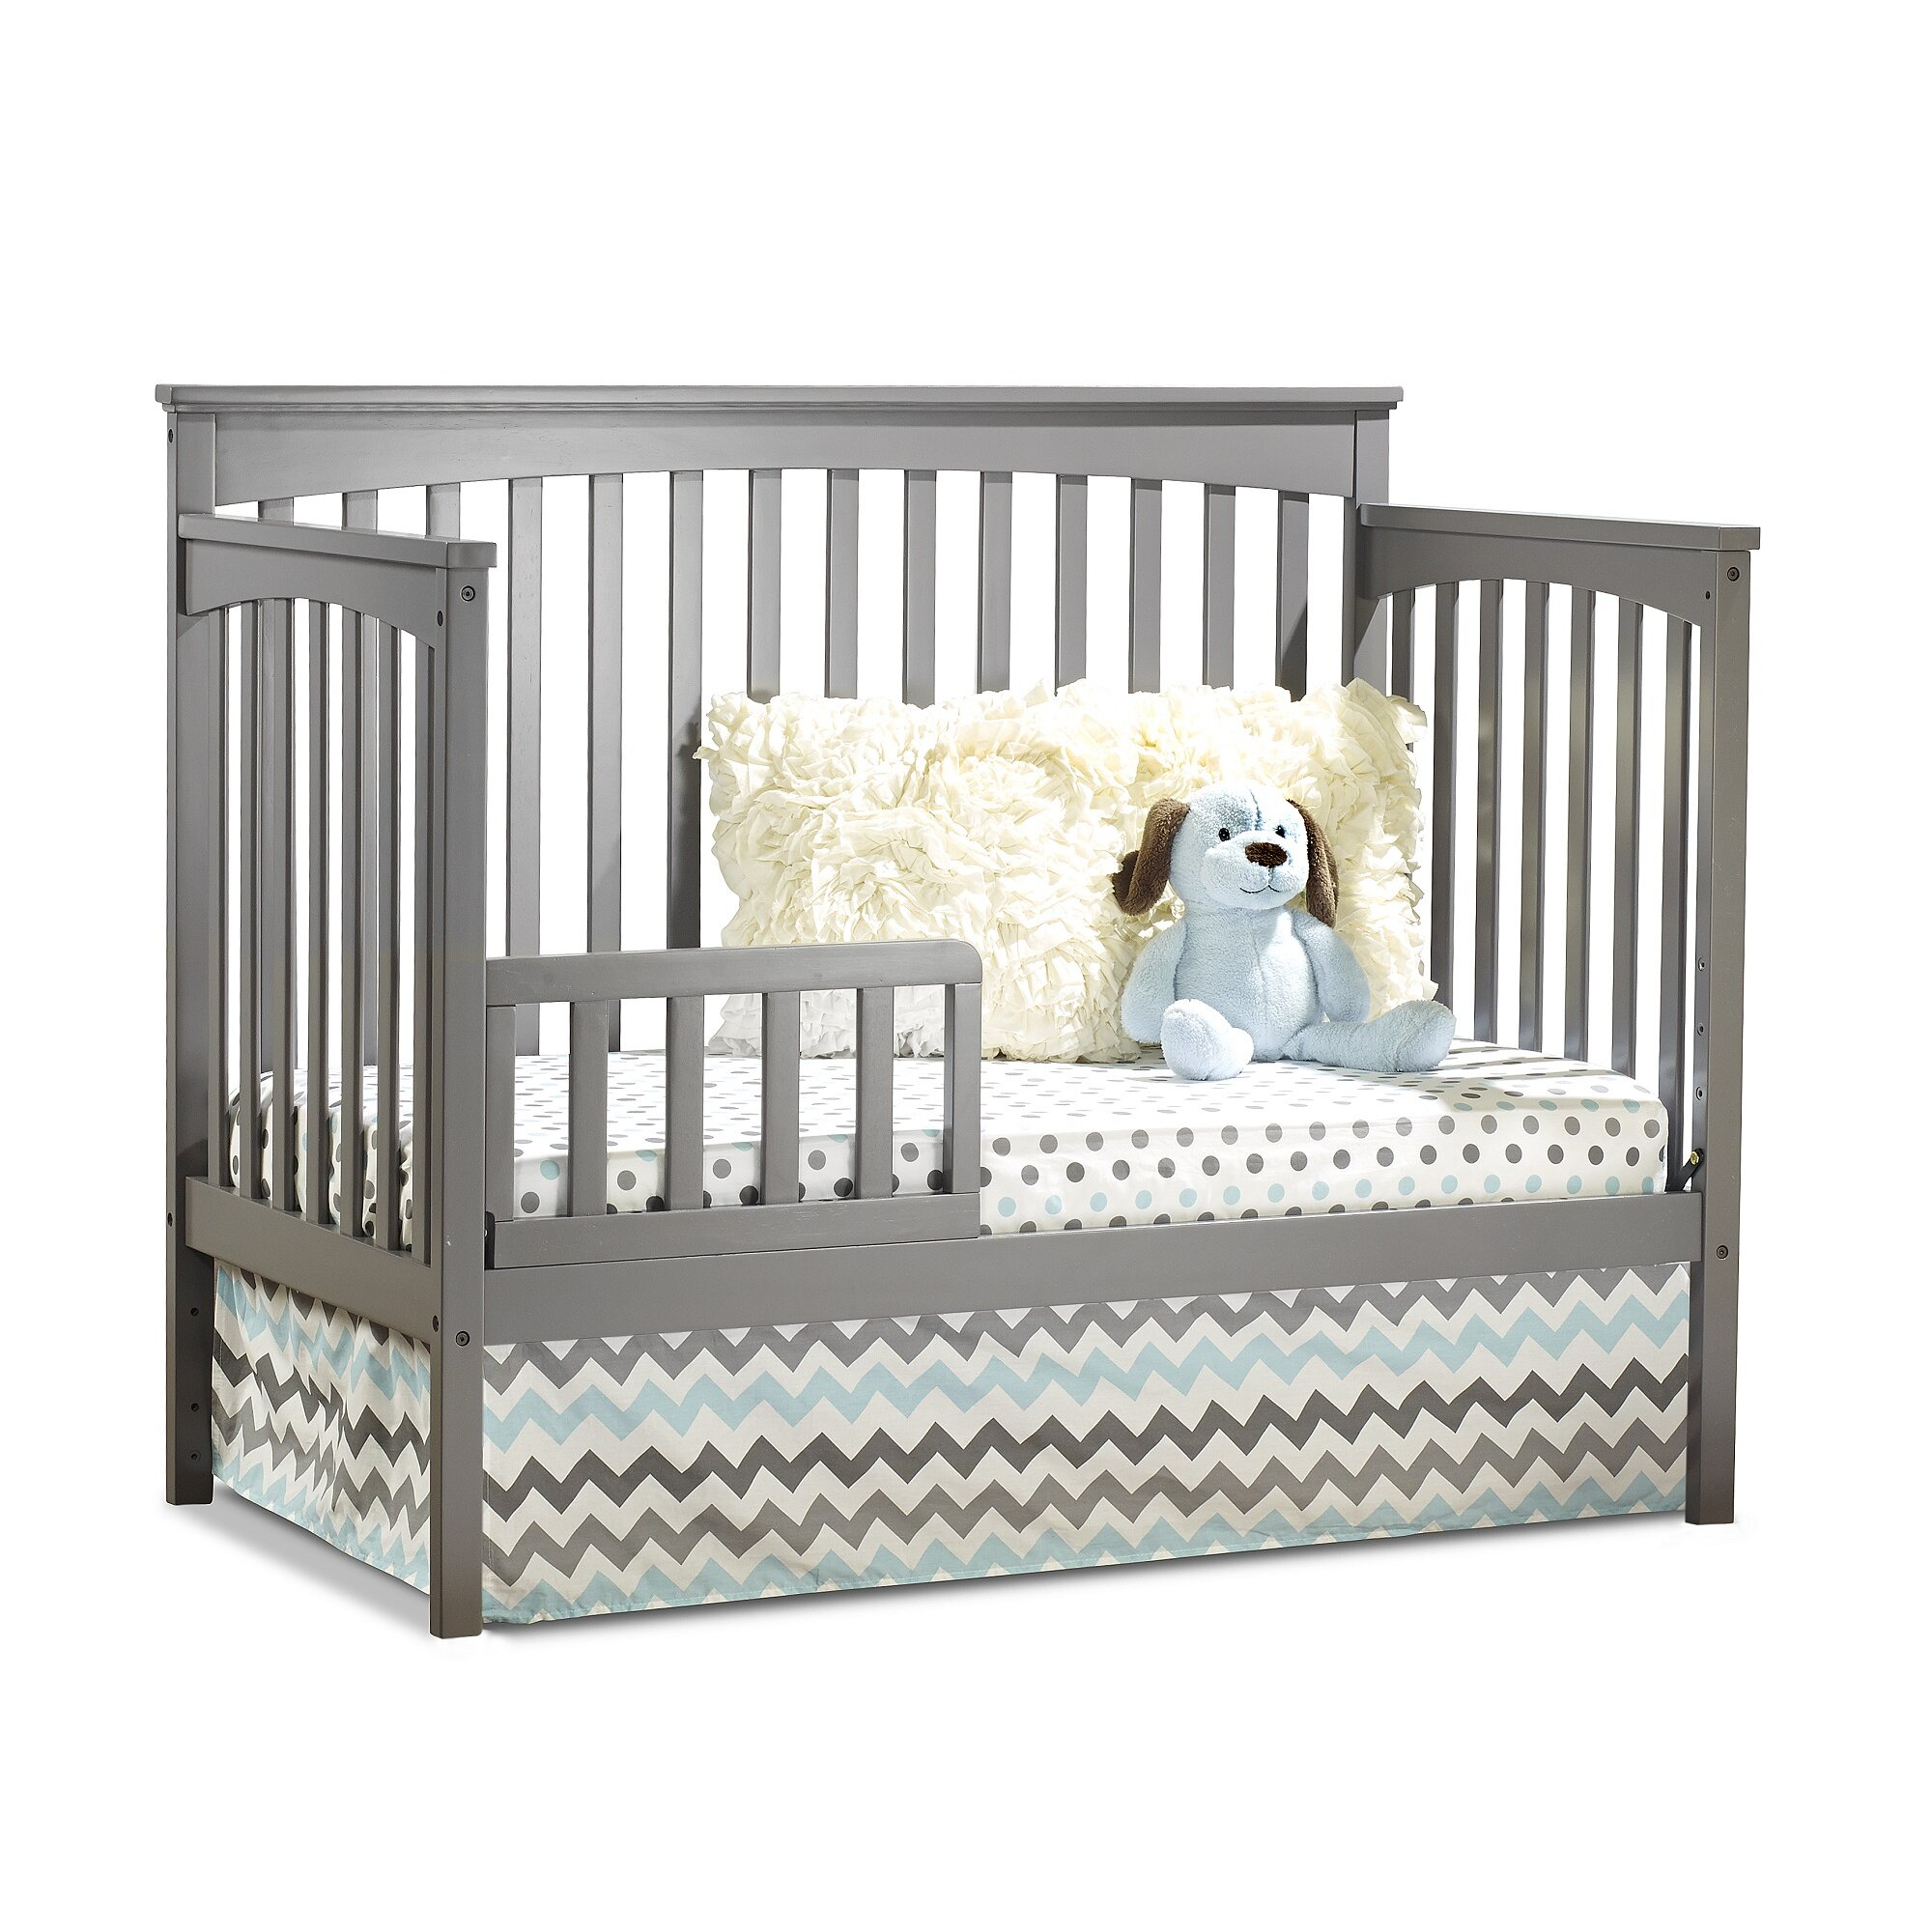 sorelle petite paradise 4 in 1 elite room in a box 5 piece convertible crib set reviews wayfair. Black Bedroom Furniture Sets. Home Design Ideas